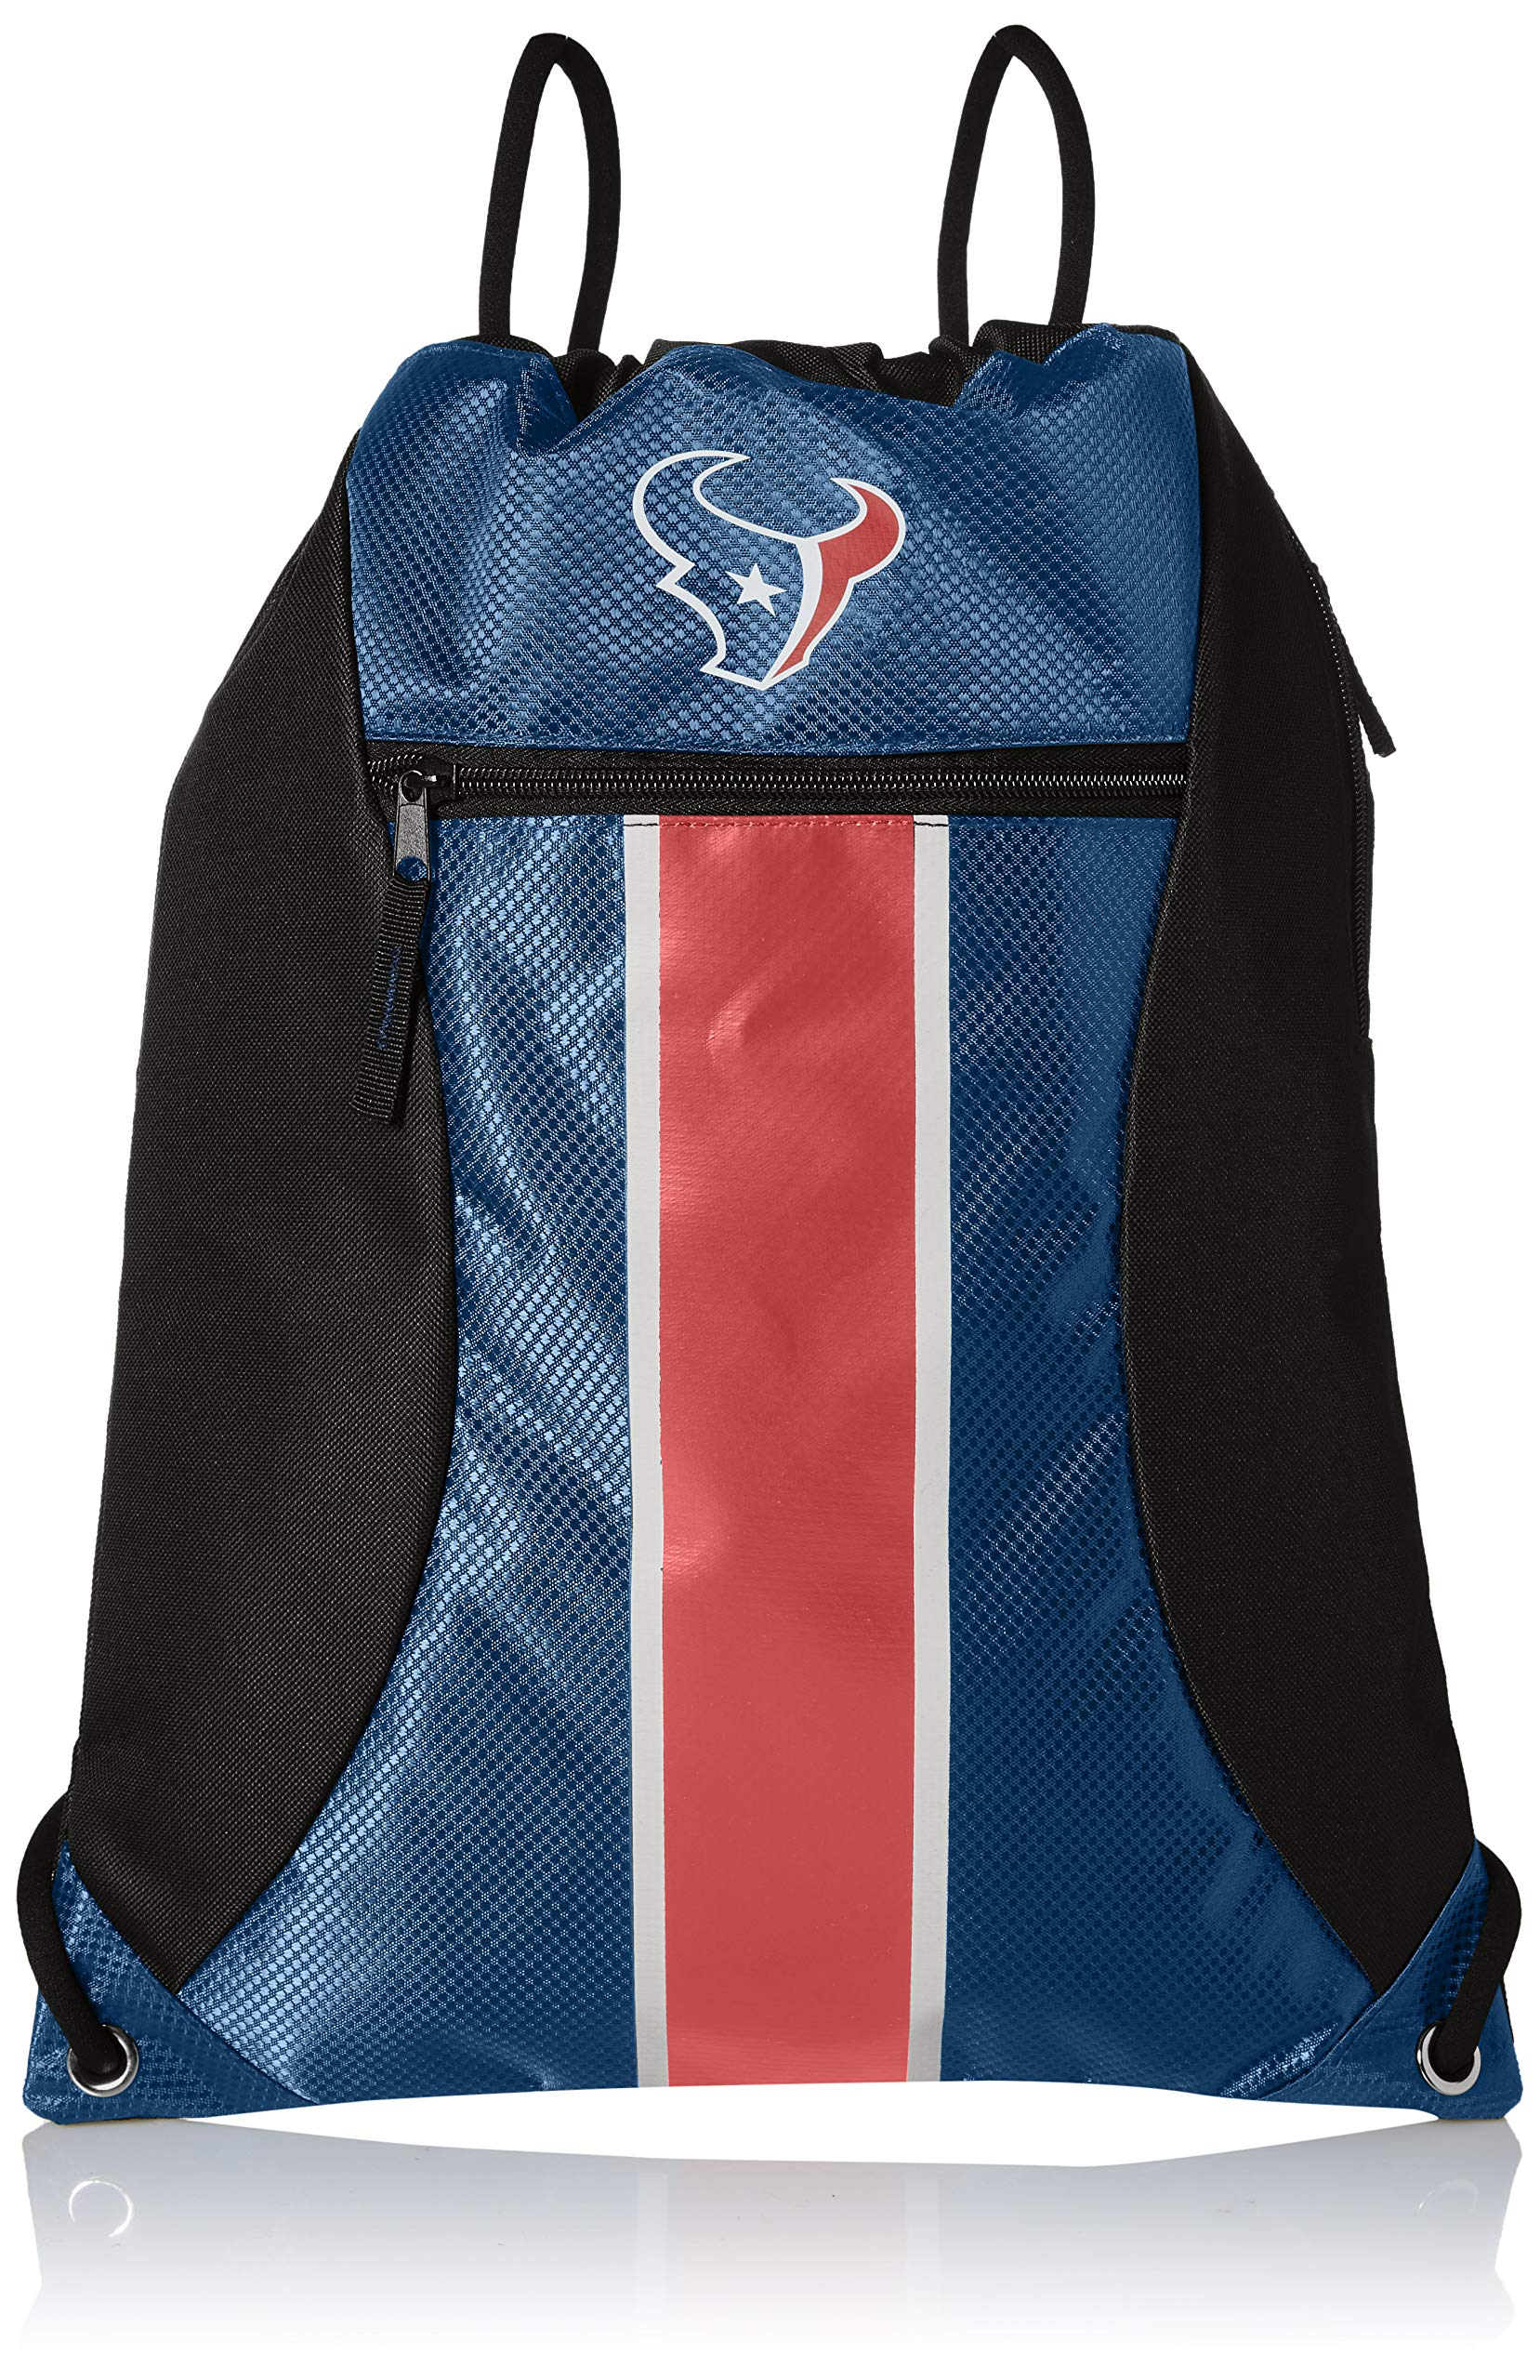 Houston Texans Big Stripe Zipper Drawstring Backpack